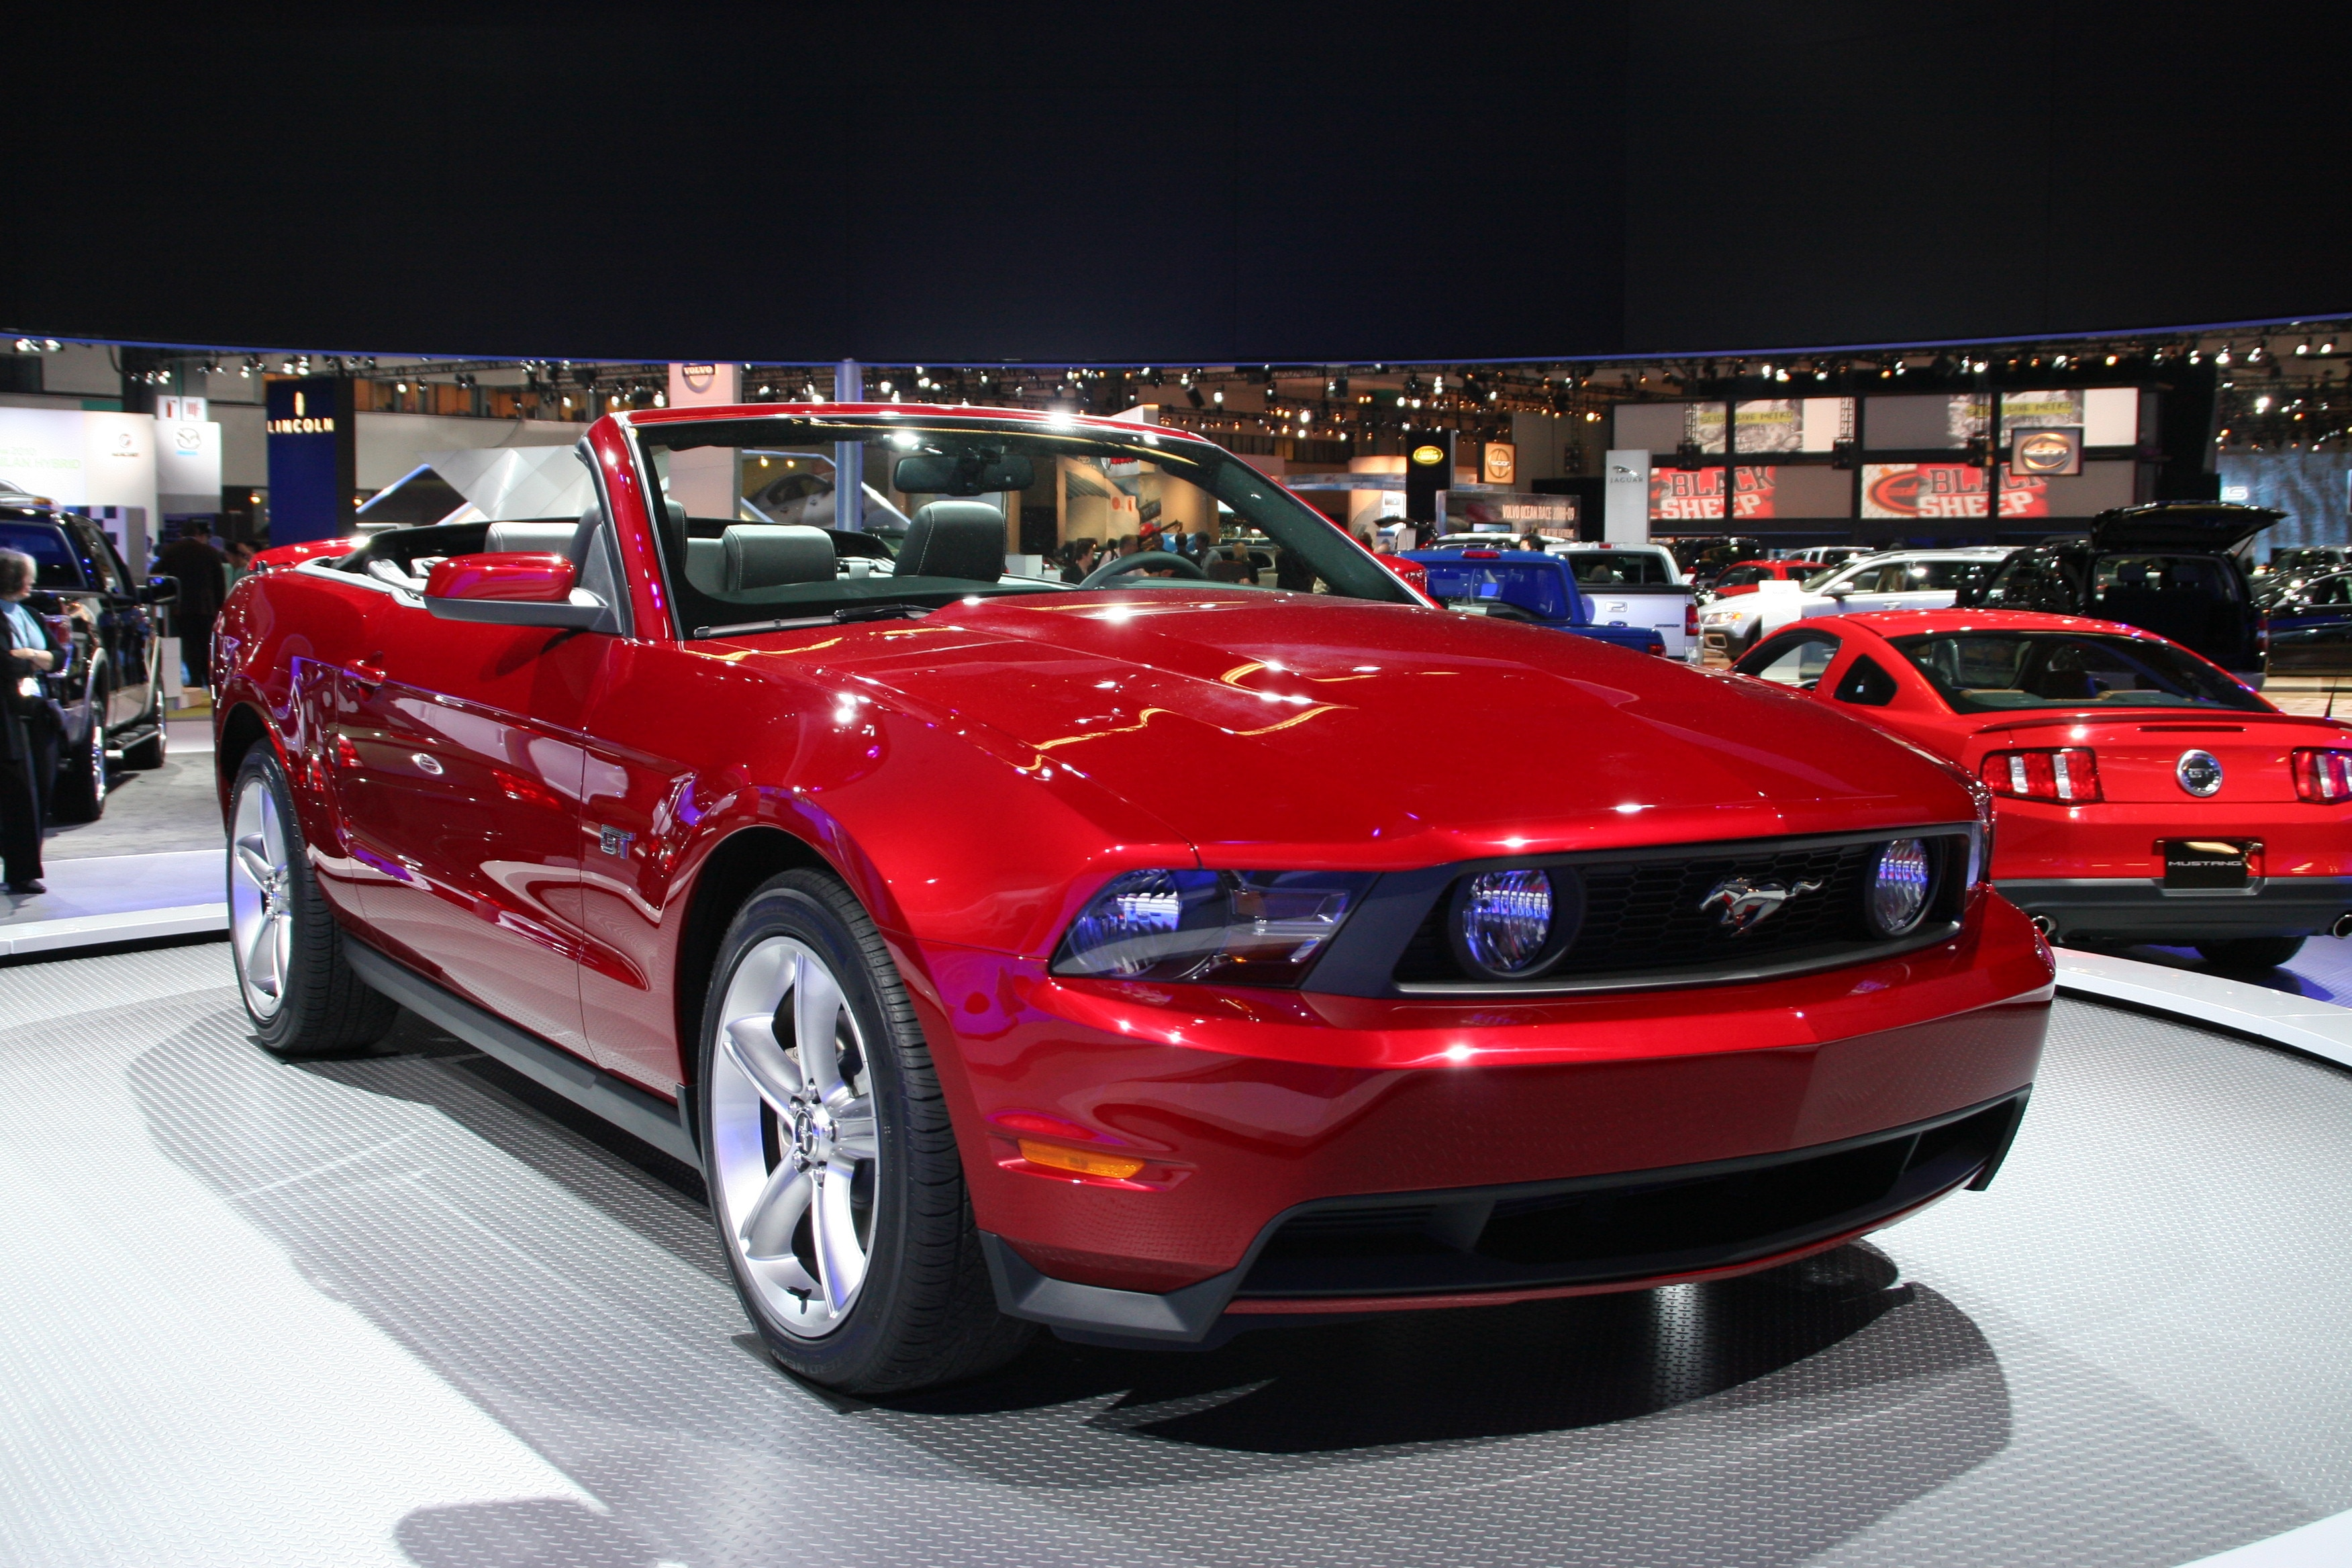 2010 ford mustang gt convertible gayot 39 s blog. Black Bedroom Furniture Sets. Home Design Ideas